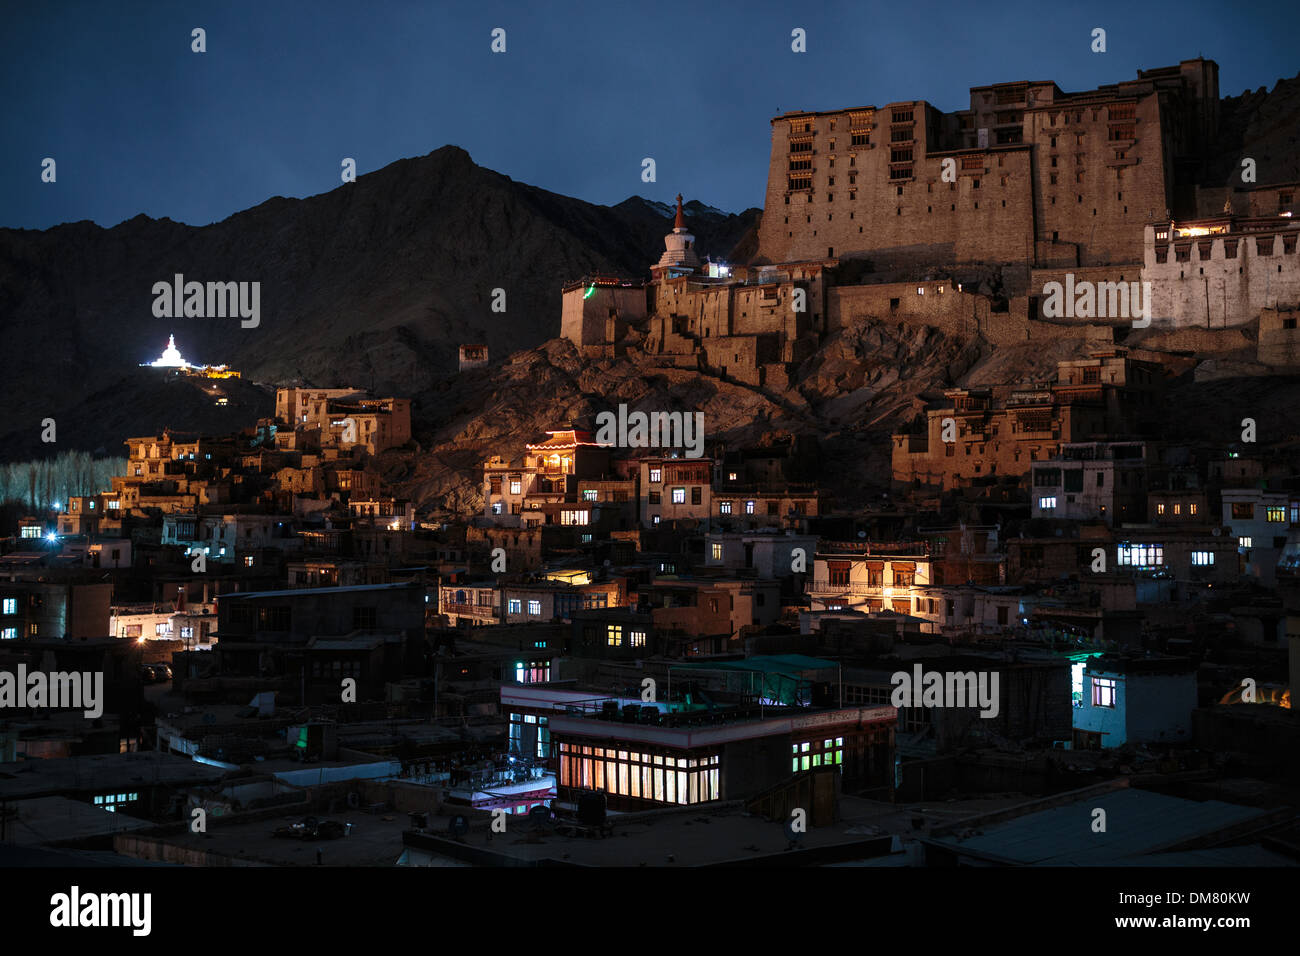 Leh Palace sits over the capital city of Ladakh. Shanti Stupa shines on the himalayan mountainside. A tibetan Buddhist city in the Indus Valley India. - Stock Image